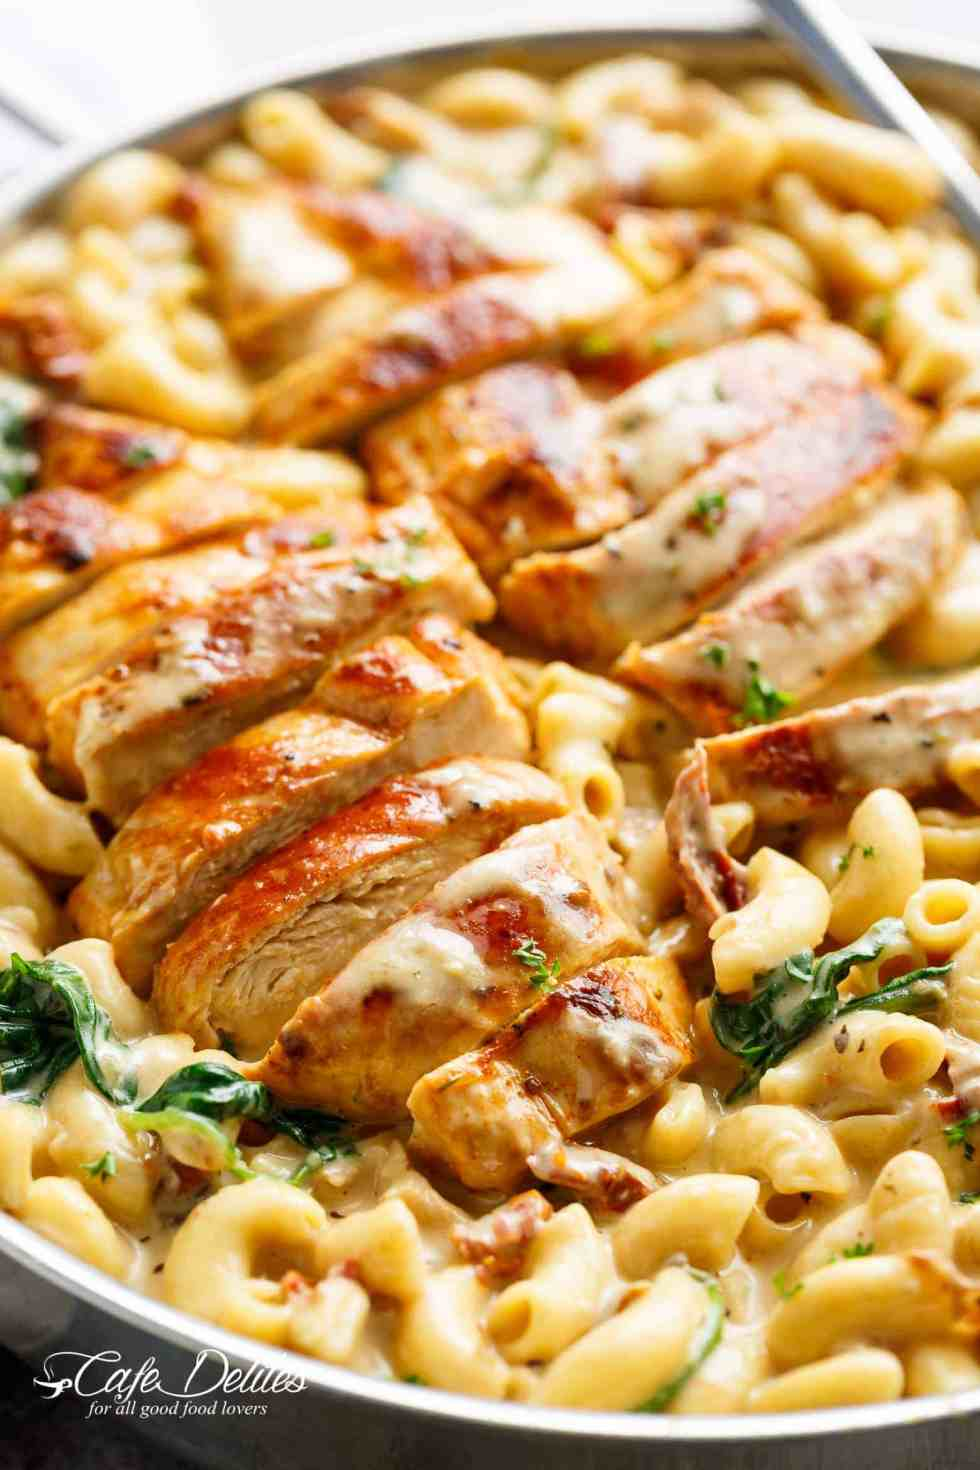 Tuscan Chicken Mac And Cheese One Pot Stove Top Cafe Delites French Fries 2000 150 Gr How To Make